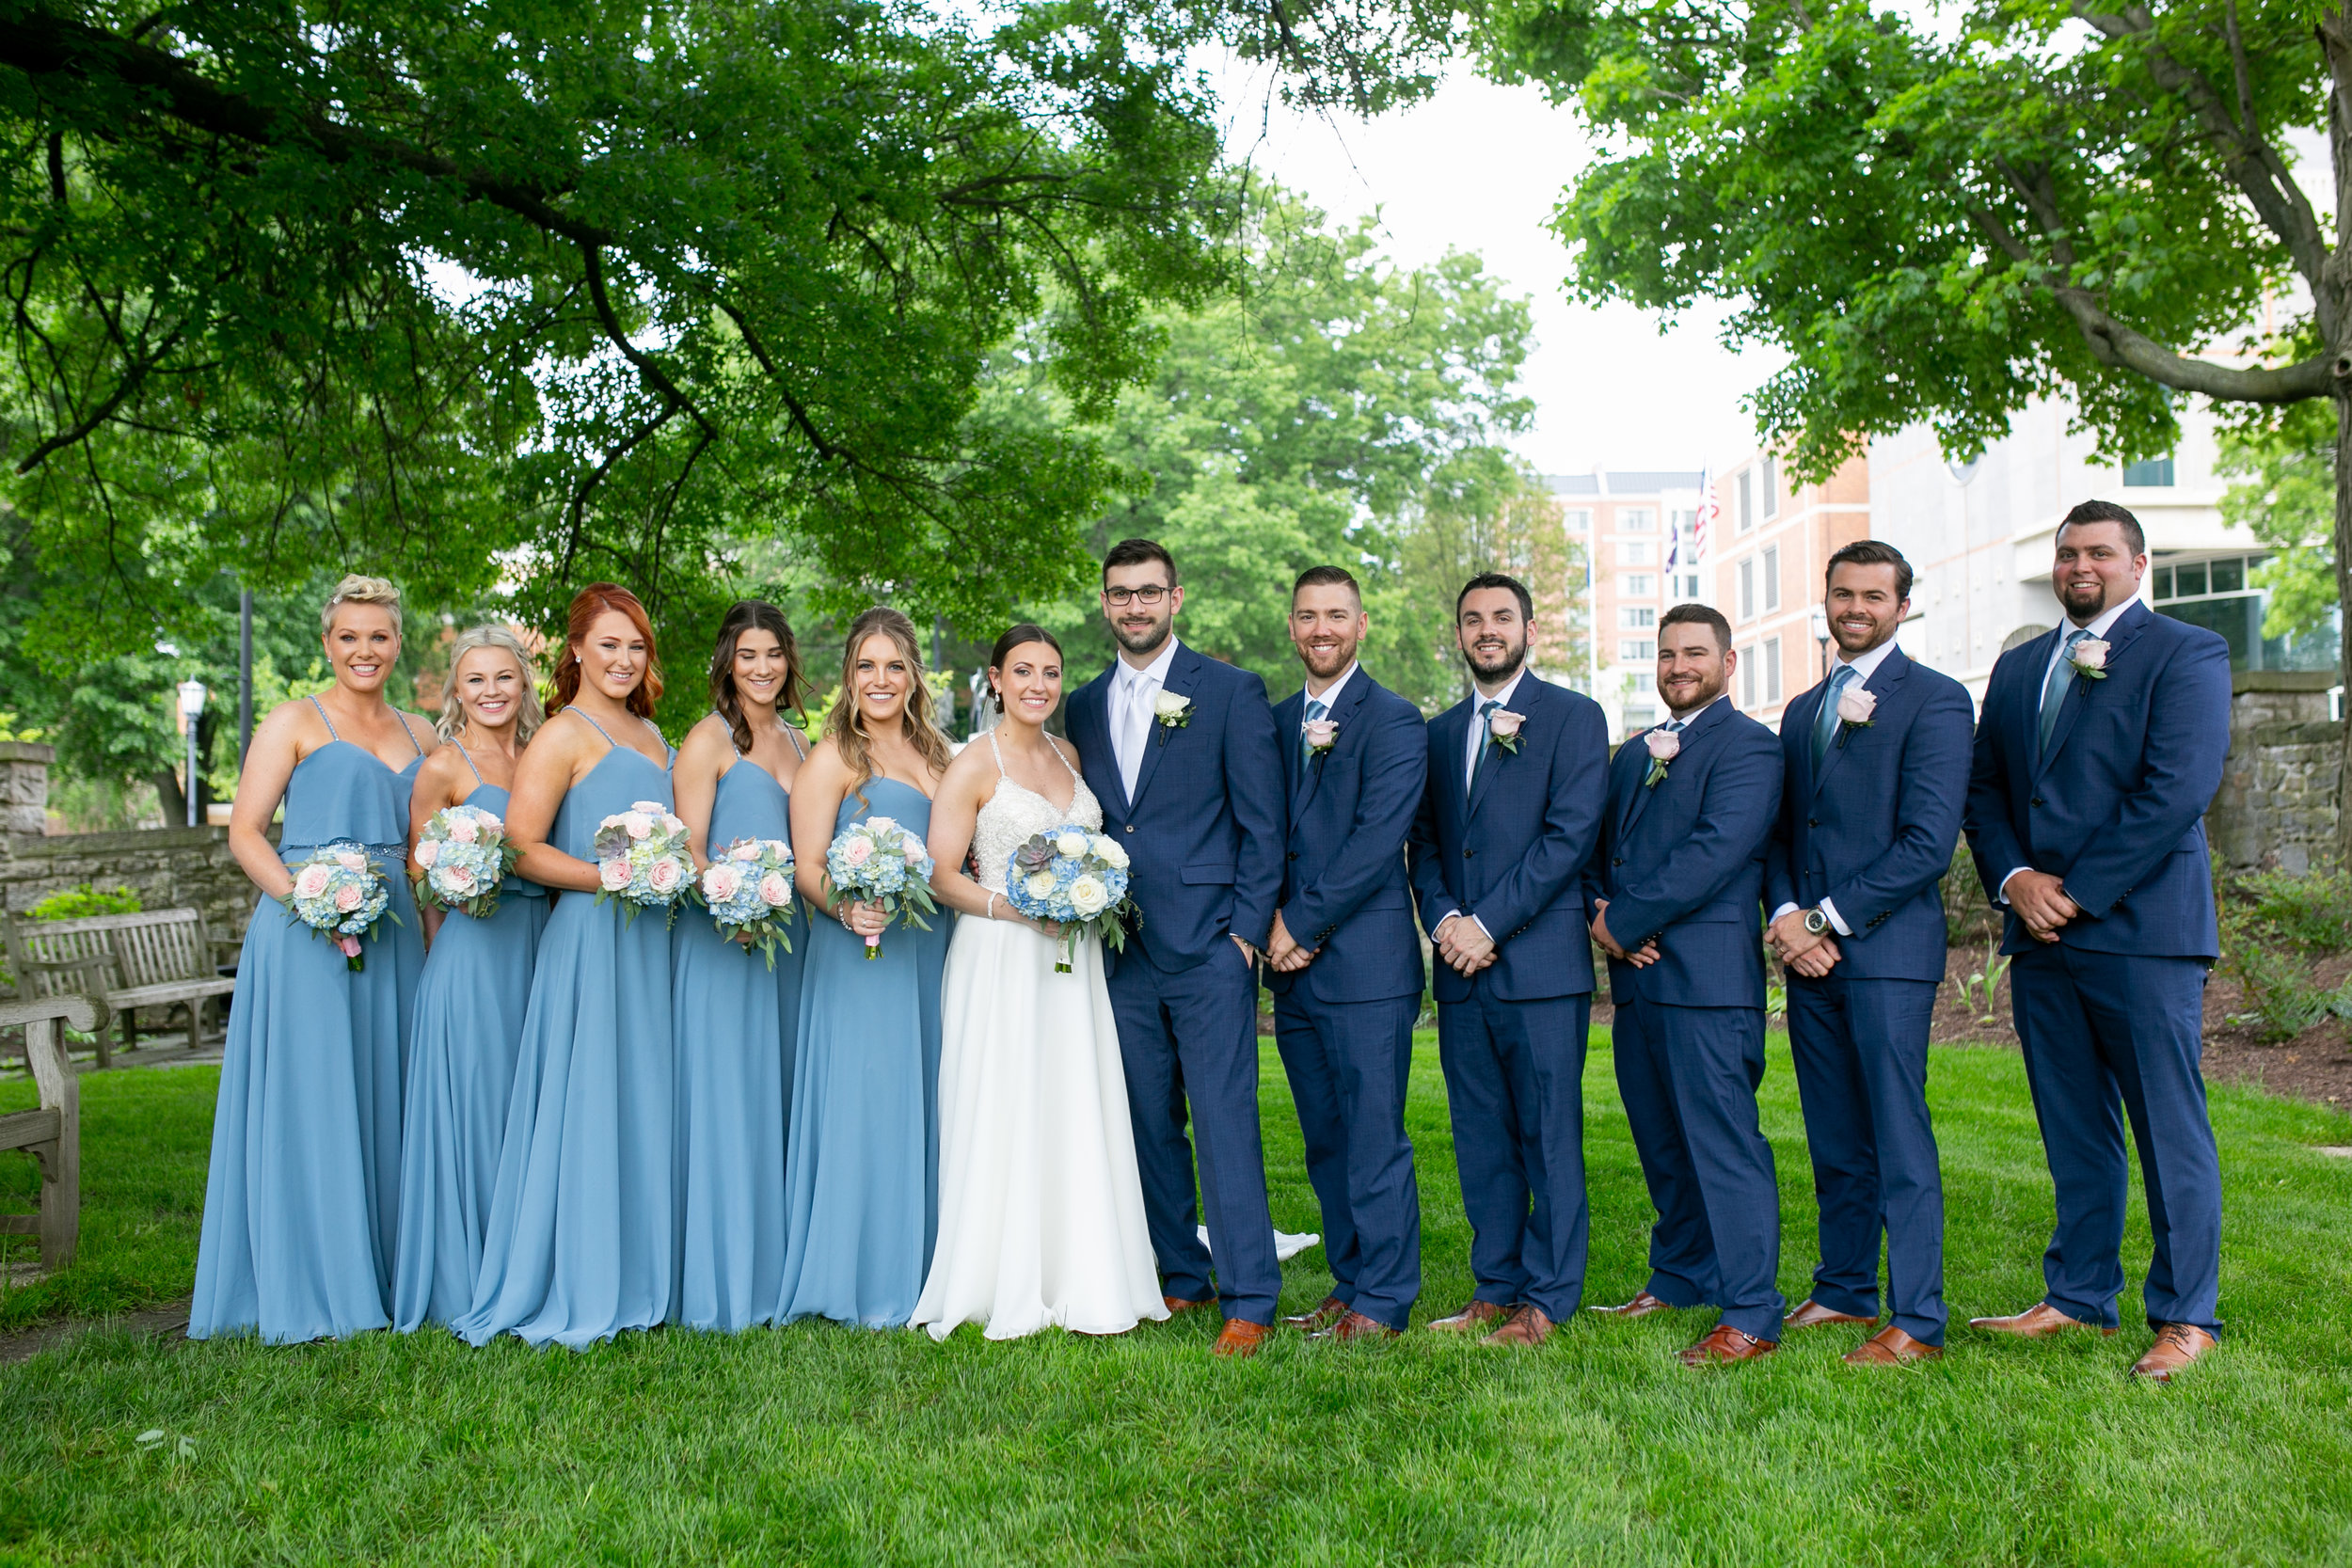 montdale-country-club-wedding-by-leahdanielsphotography25.jpg